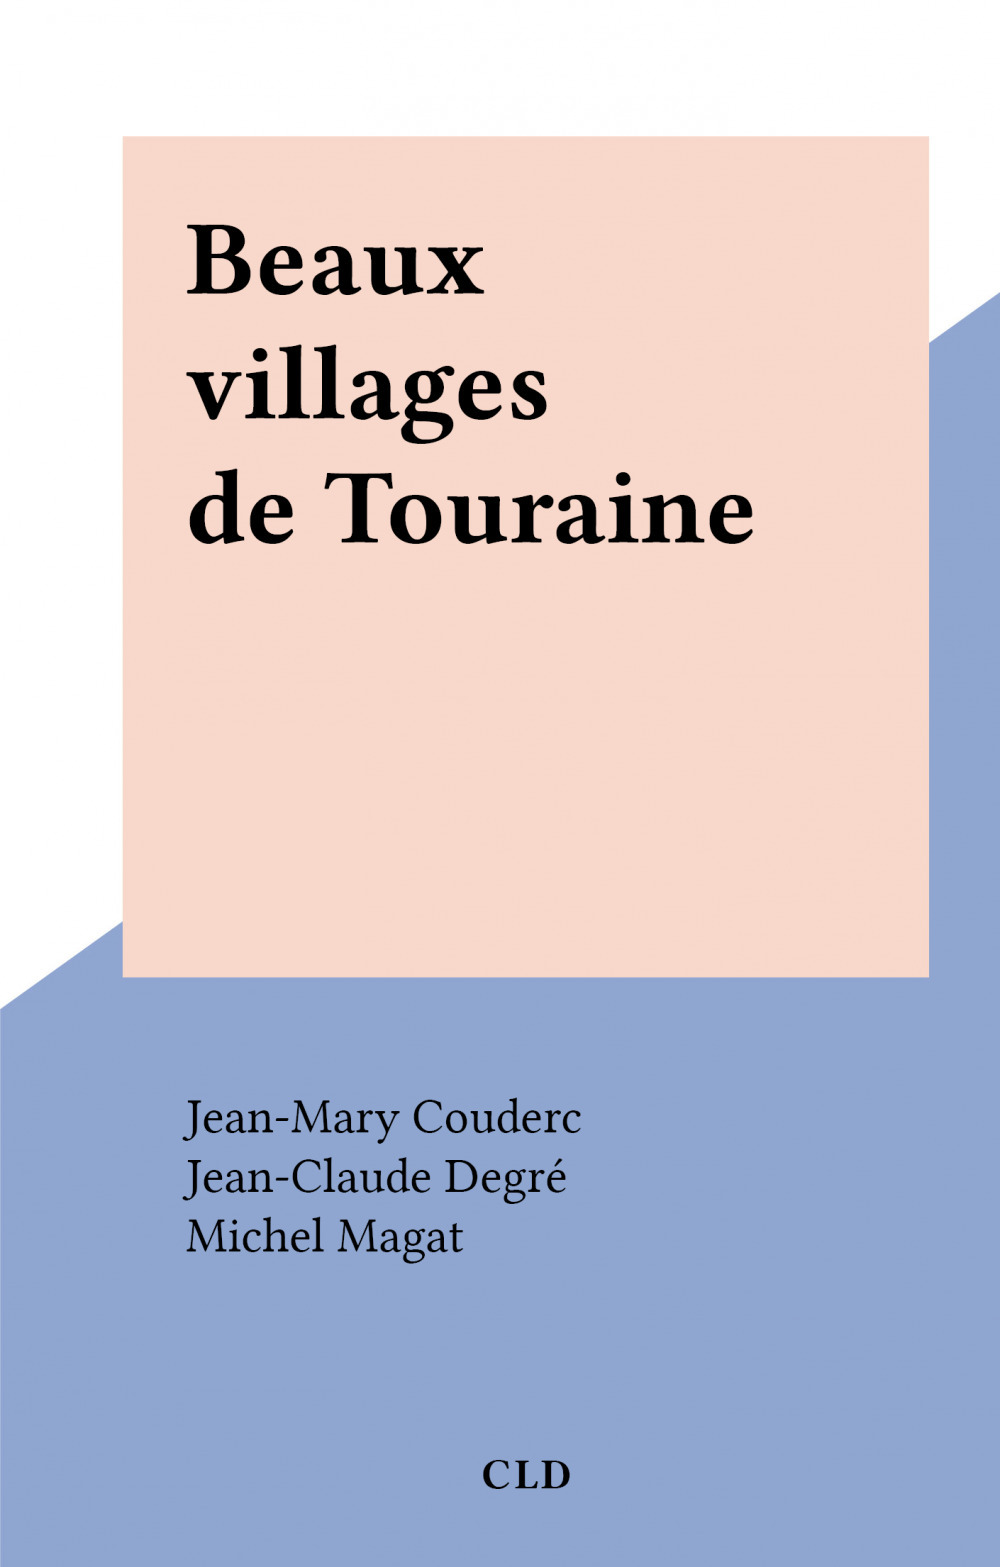 Beaux villages de Touraine